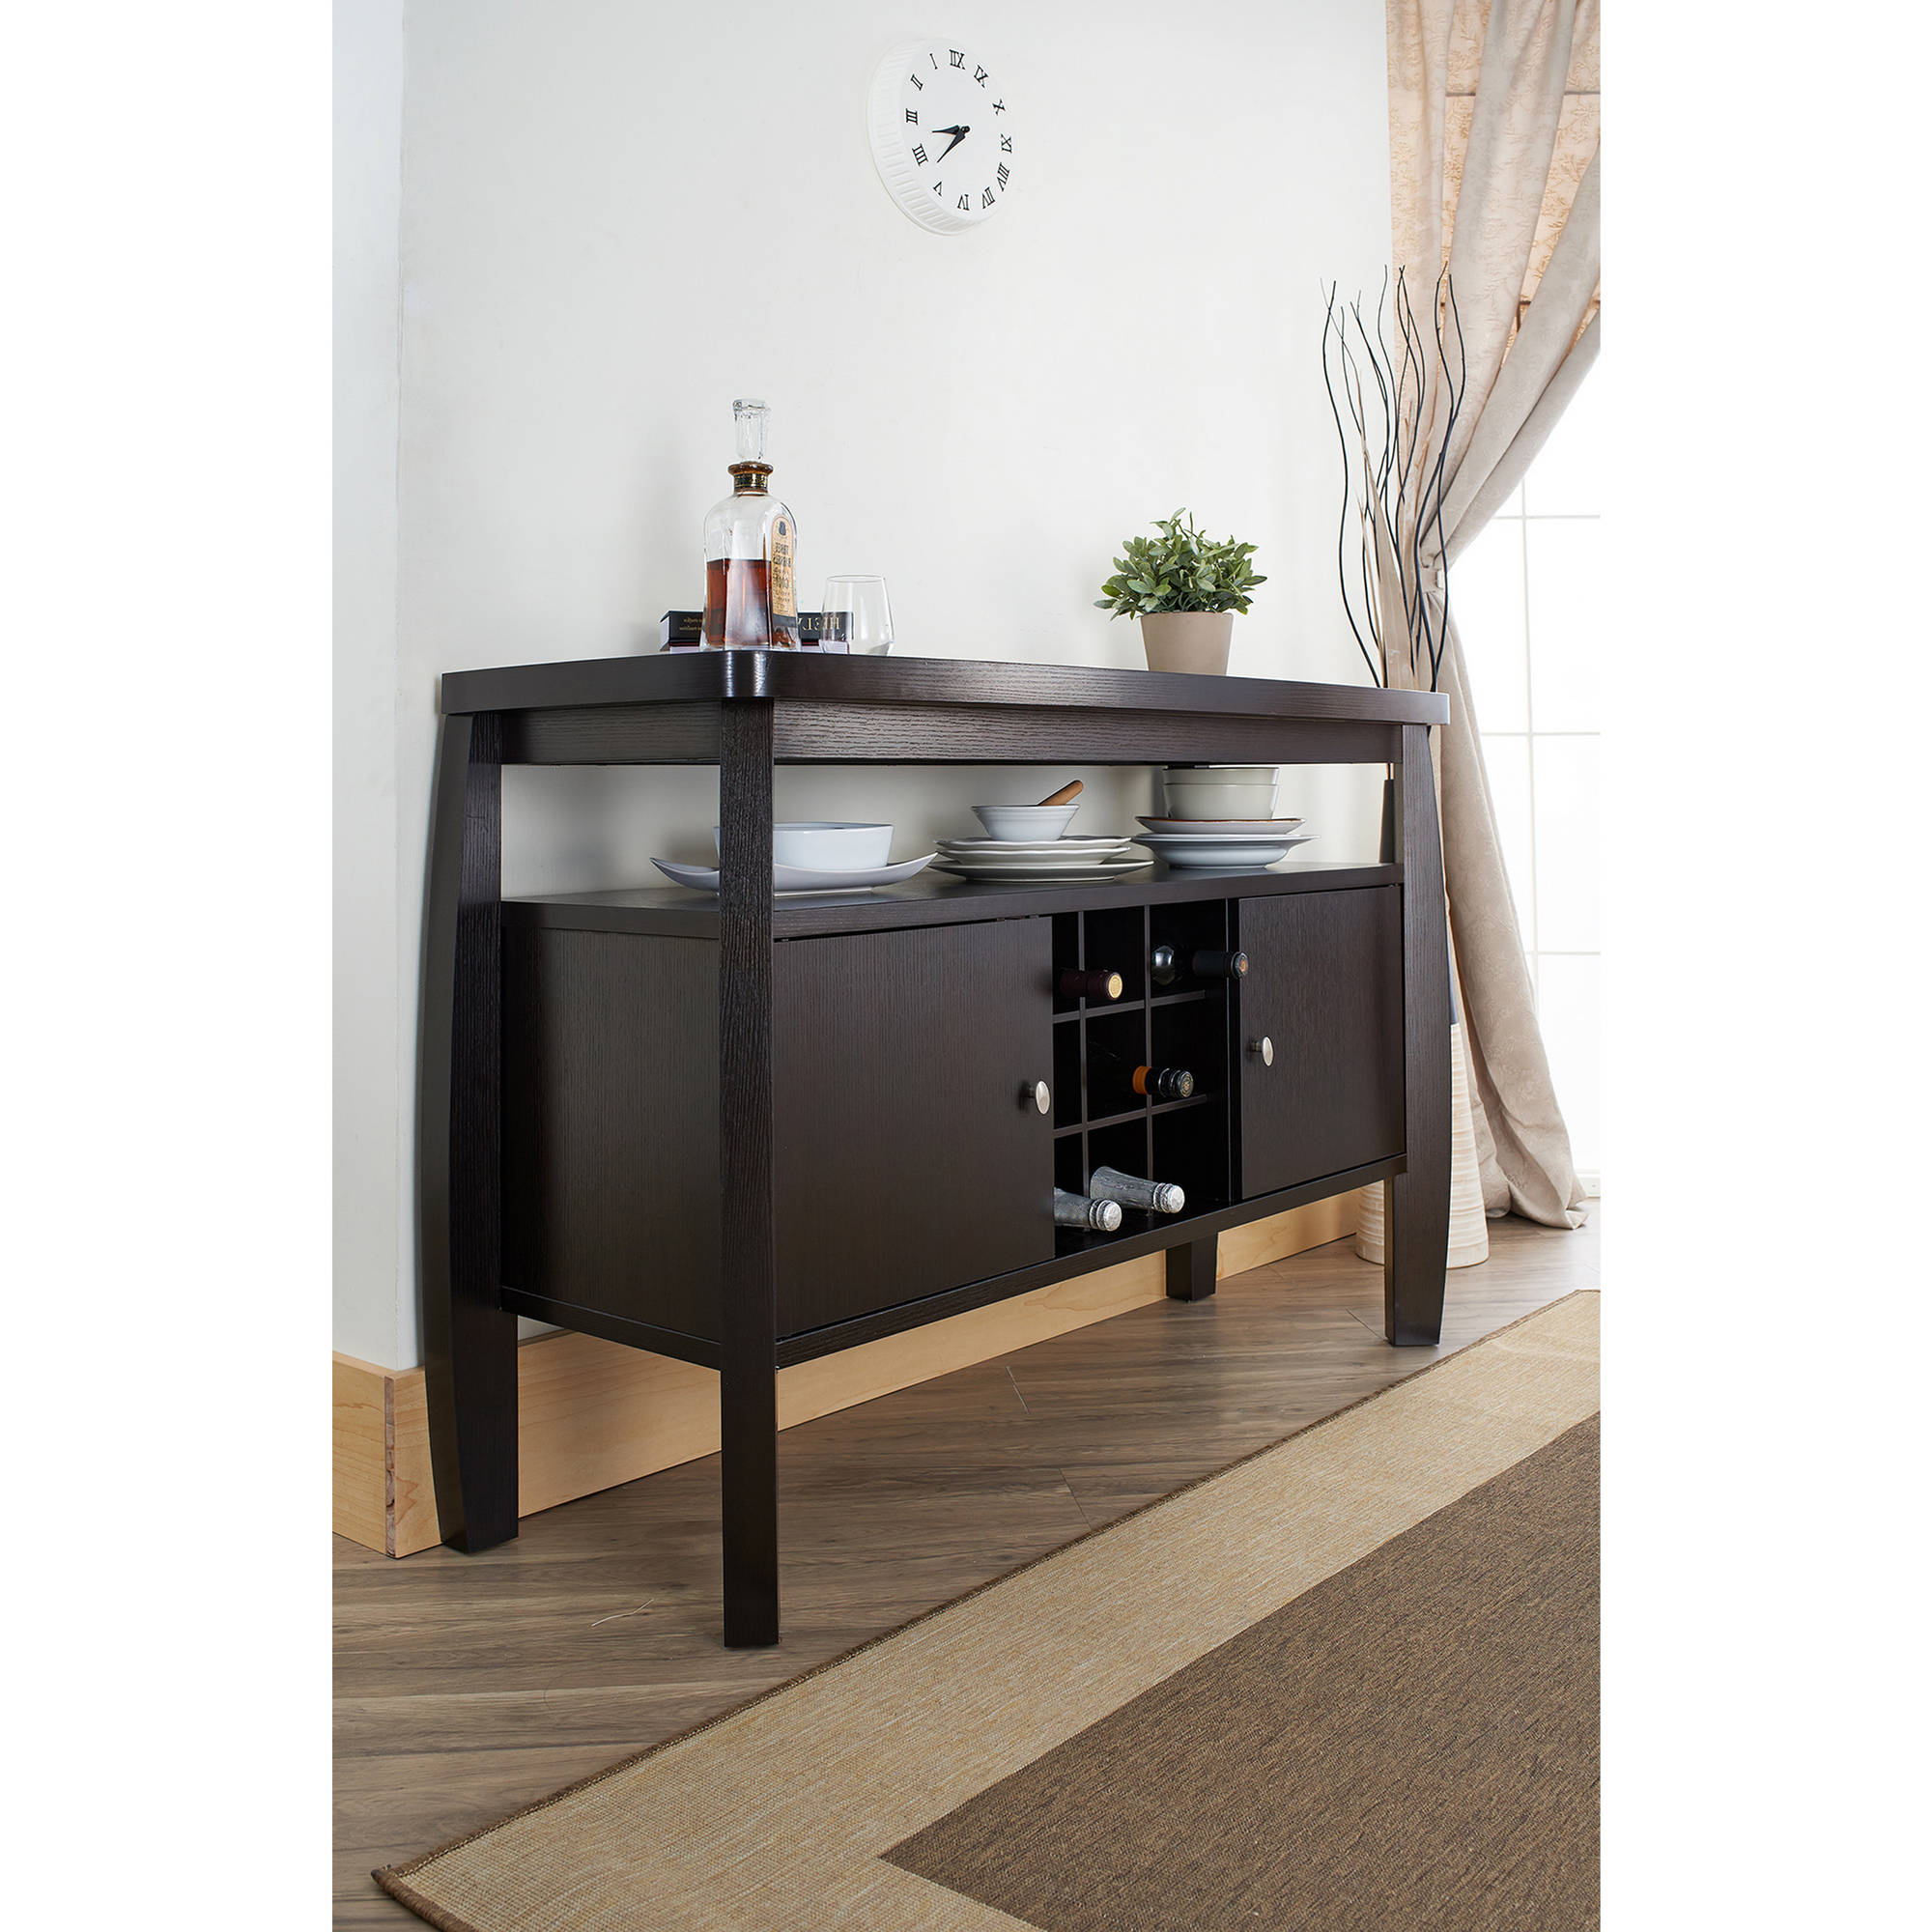 Furniture Of America Vera Contemporary Multi Storage Buffet Table, Espresso Intended For Contemporary Wine Bar Buffets (View 16 of 20)